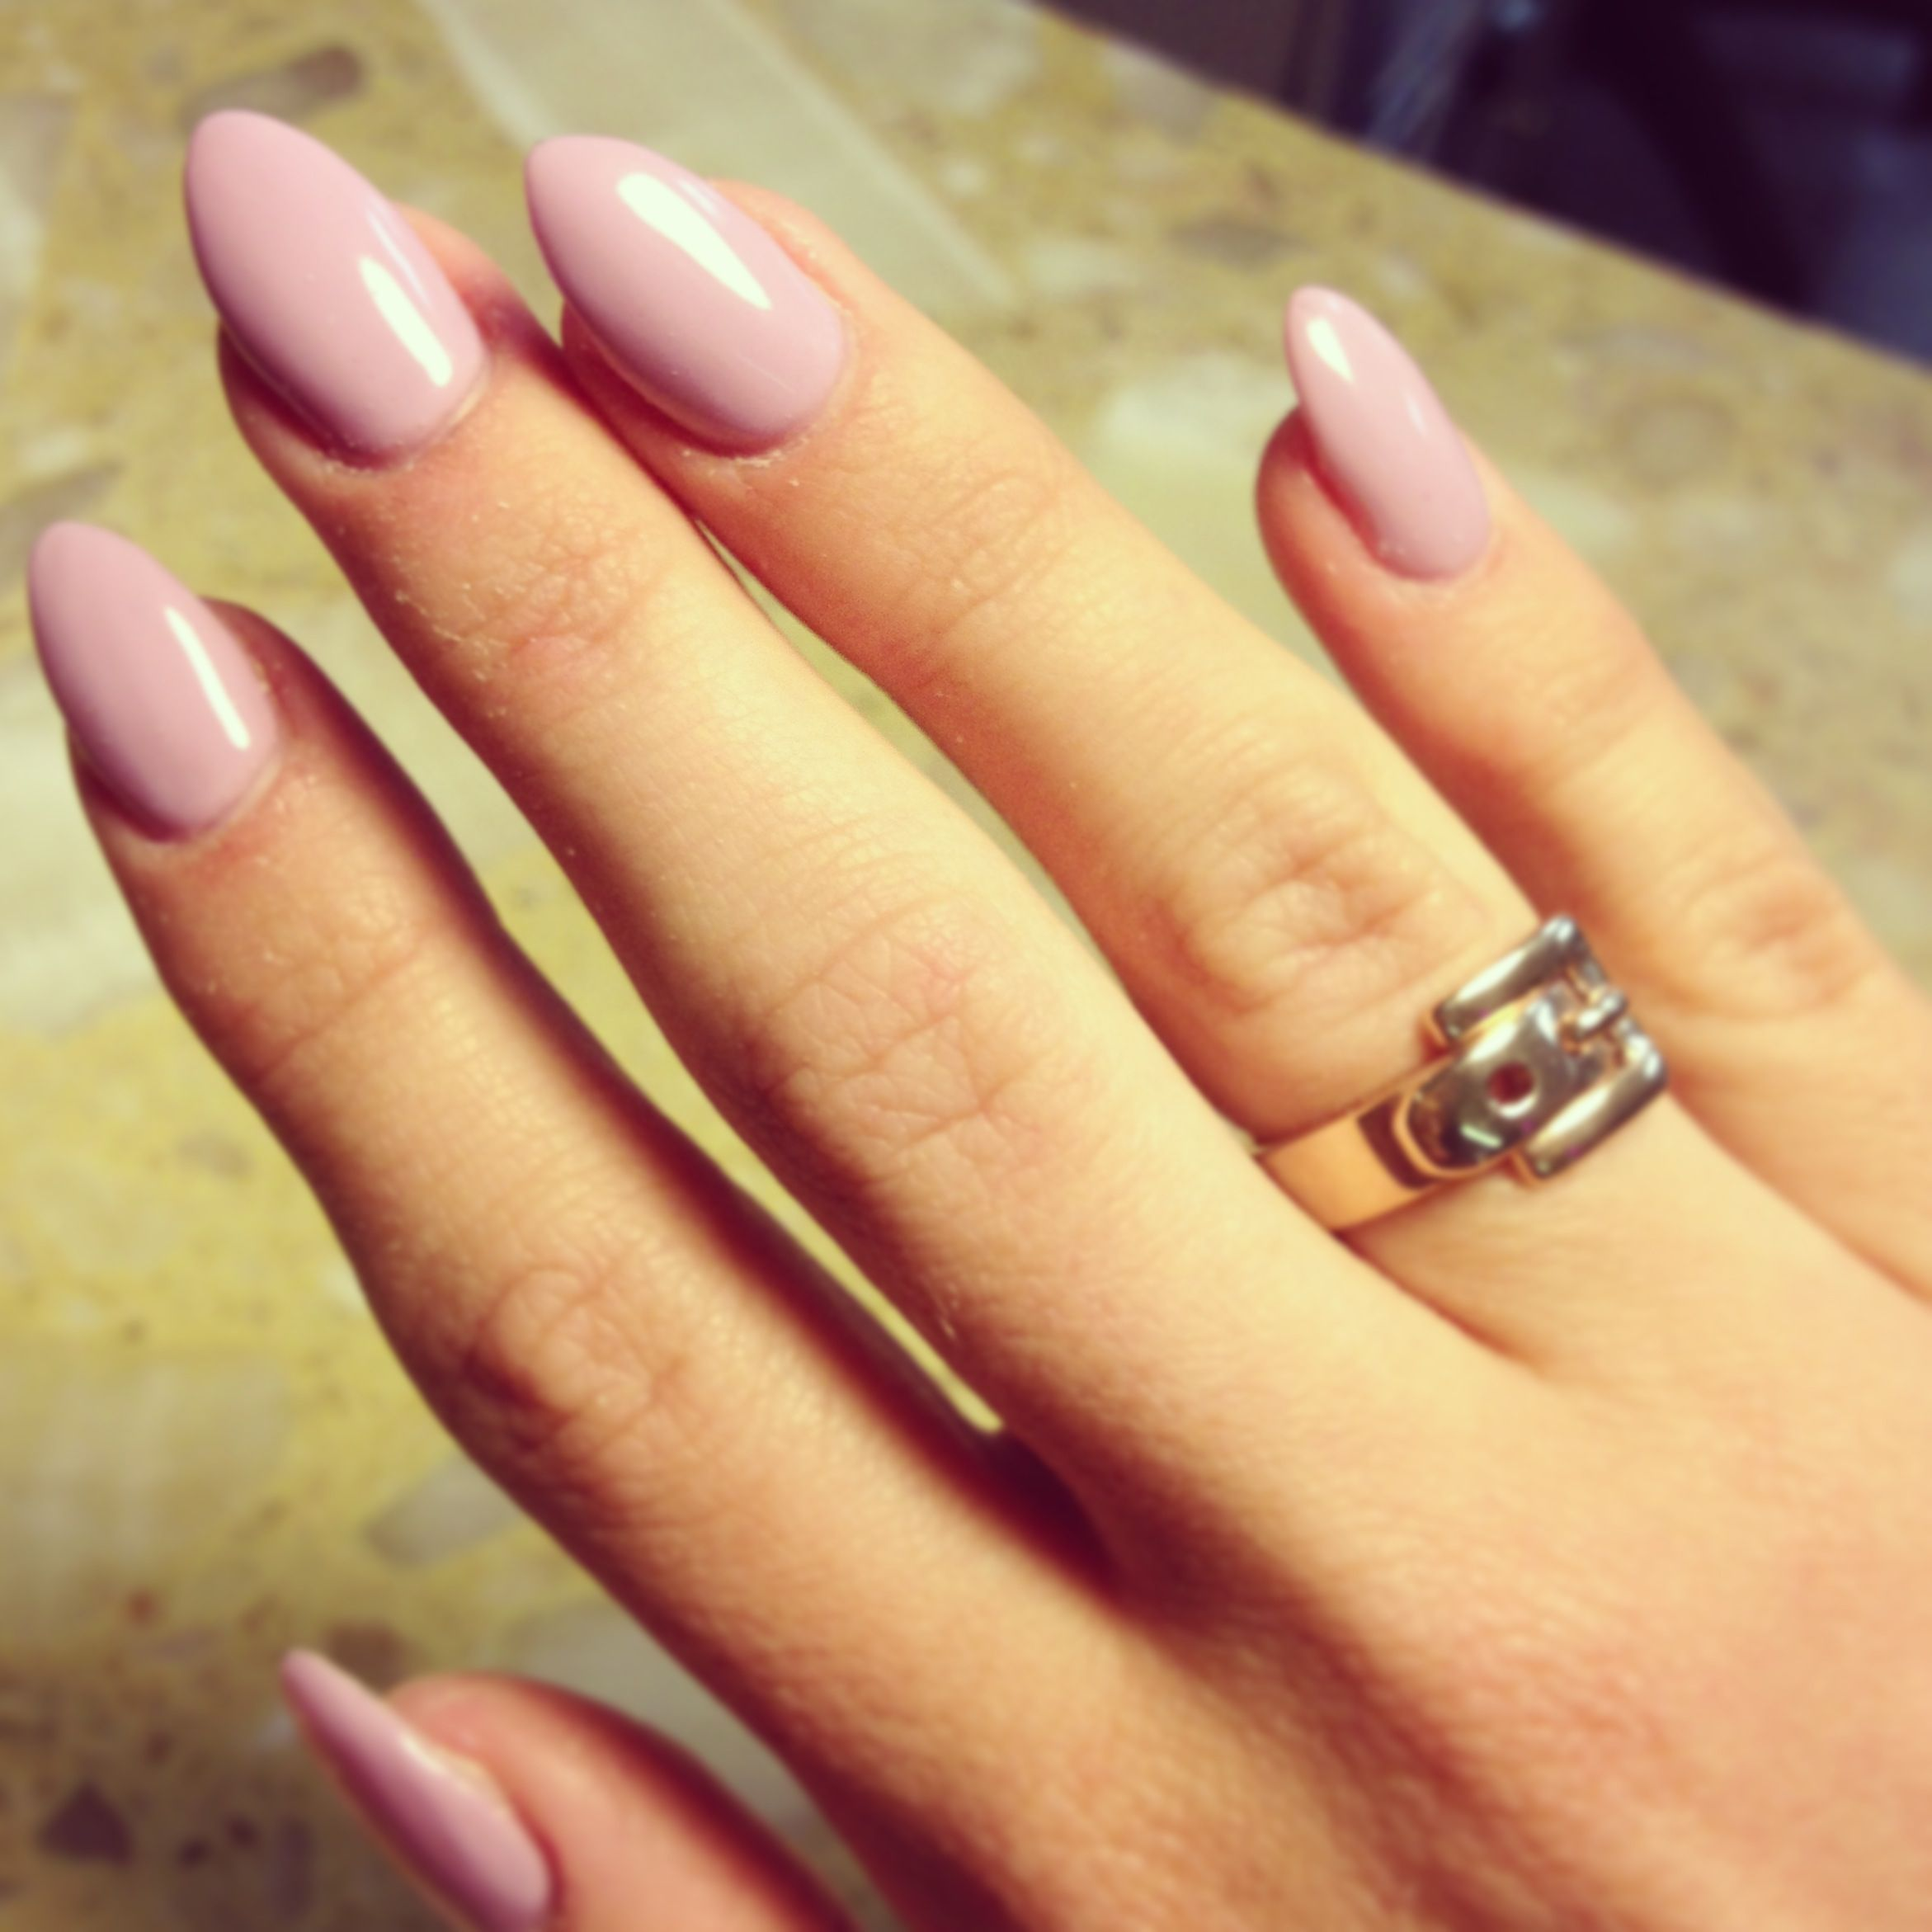 Stiletto Nails | Nail Inspo | Pinterest | Stilettos, Adele and Manicure